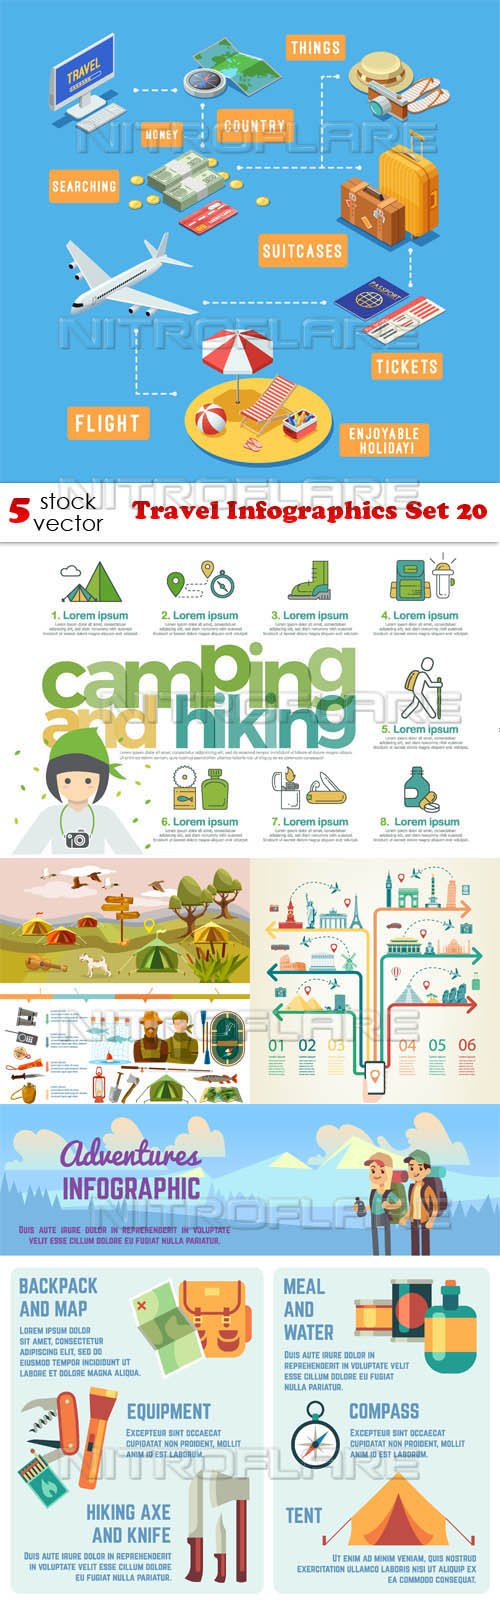 Vectors - Travel Infographics Set 20